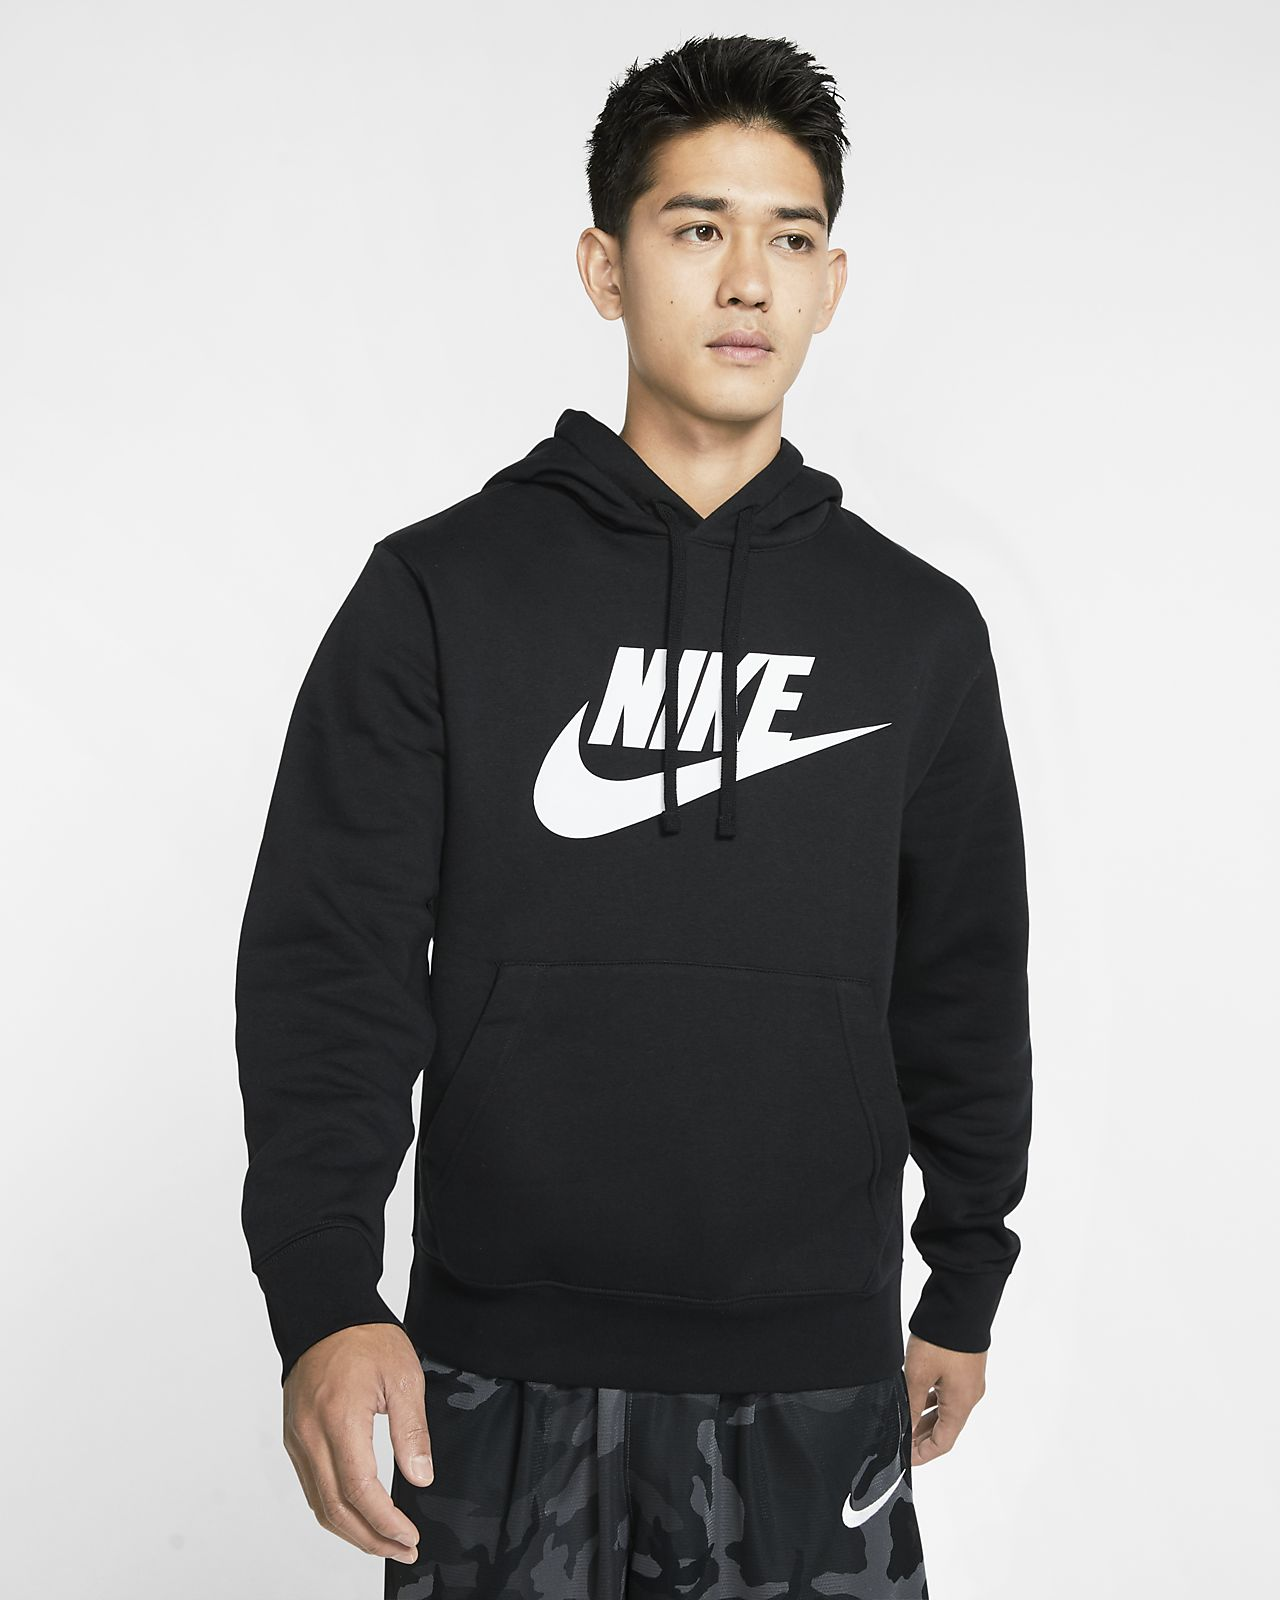 Nike Sportswear Club Fleece 男子印花套头连帽衫